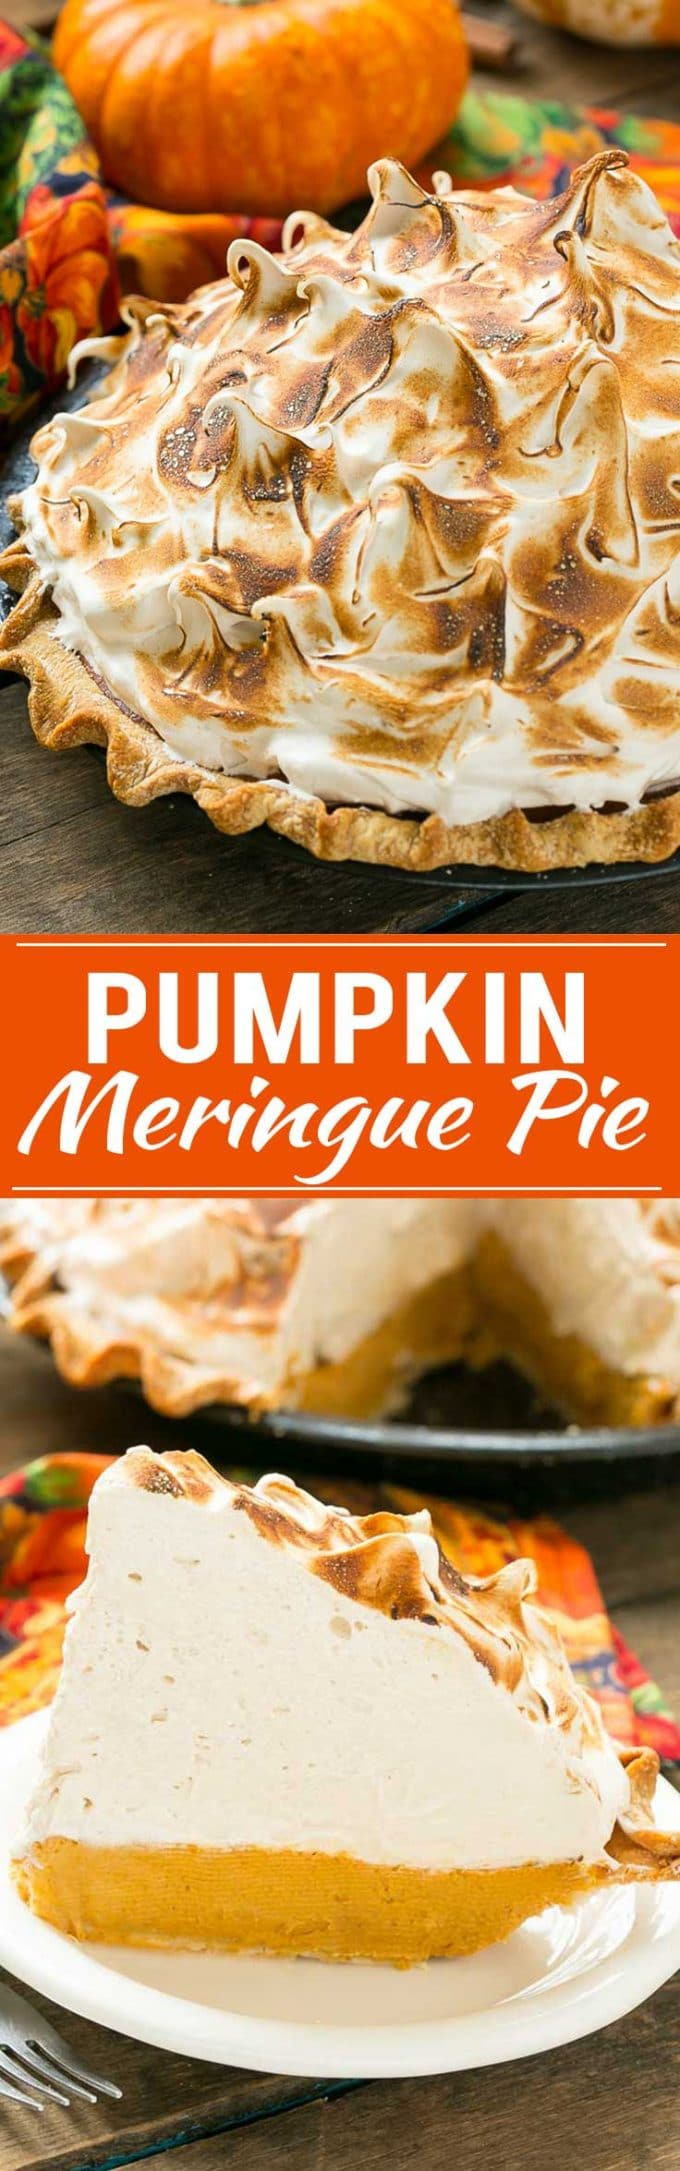 Pumpkin Meringue Pie Recipe | Brown Sugar Meringue | Best Pumpkin Pie | Best Pumpkin Meringue Pie | Creamy Pumpkin Pie